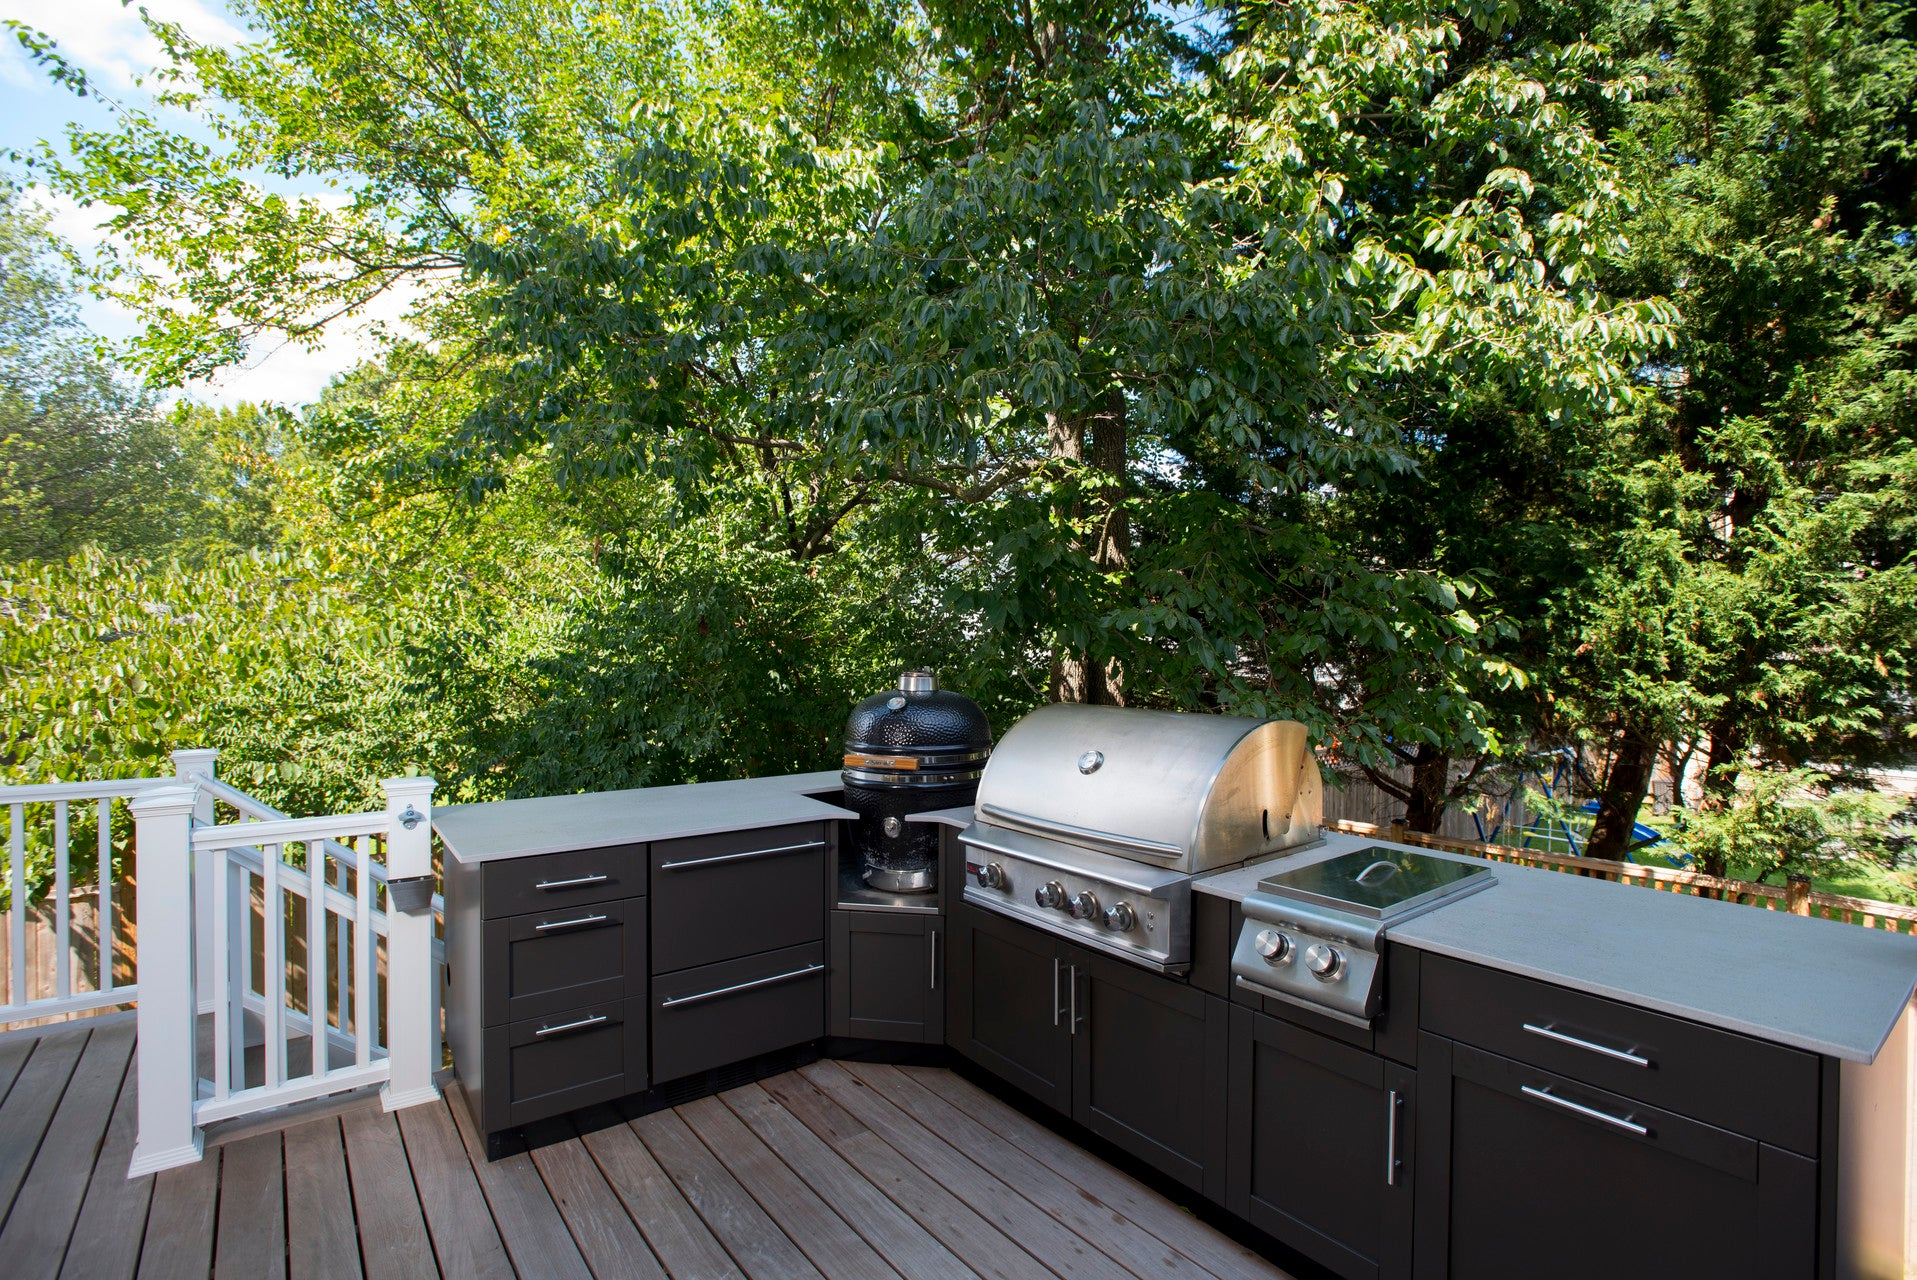 outdoor kitchen 3 with bbq, kamado, and black doors